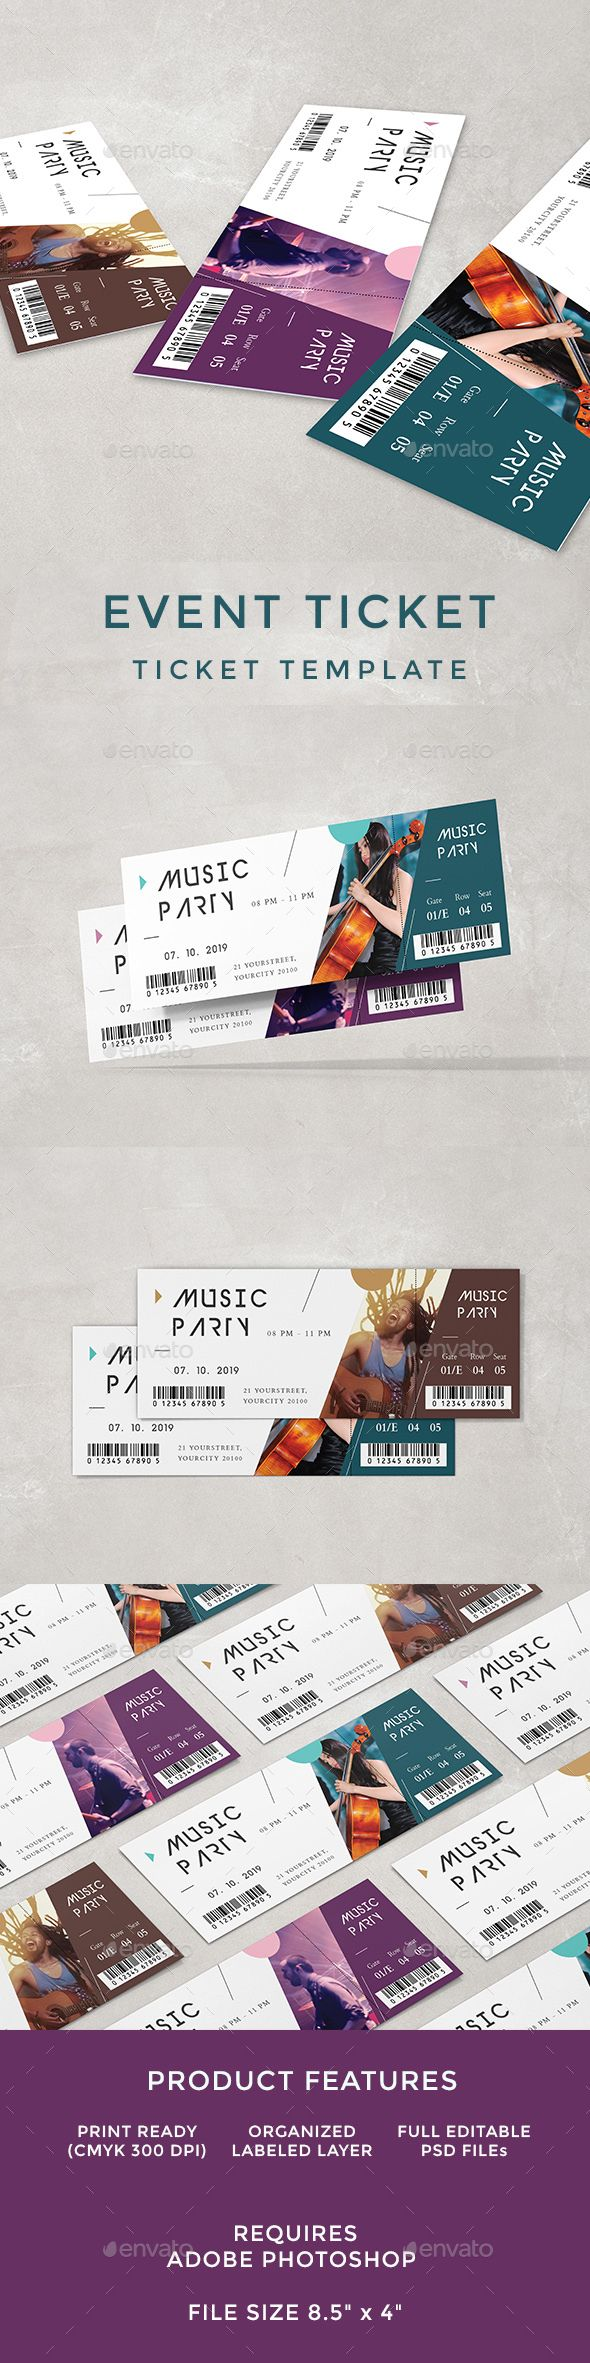 Concert Ticket Template Free Download Entrancing Event Ticket  Event Ticket Print Templates And Template